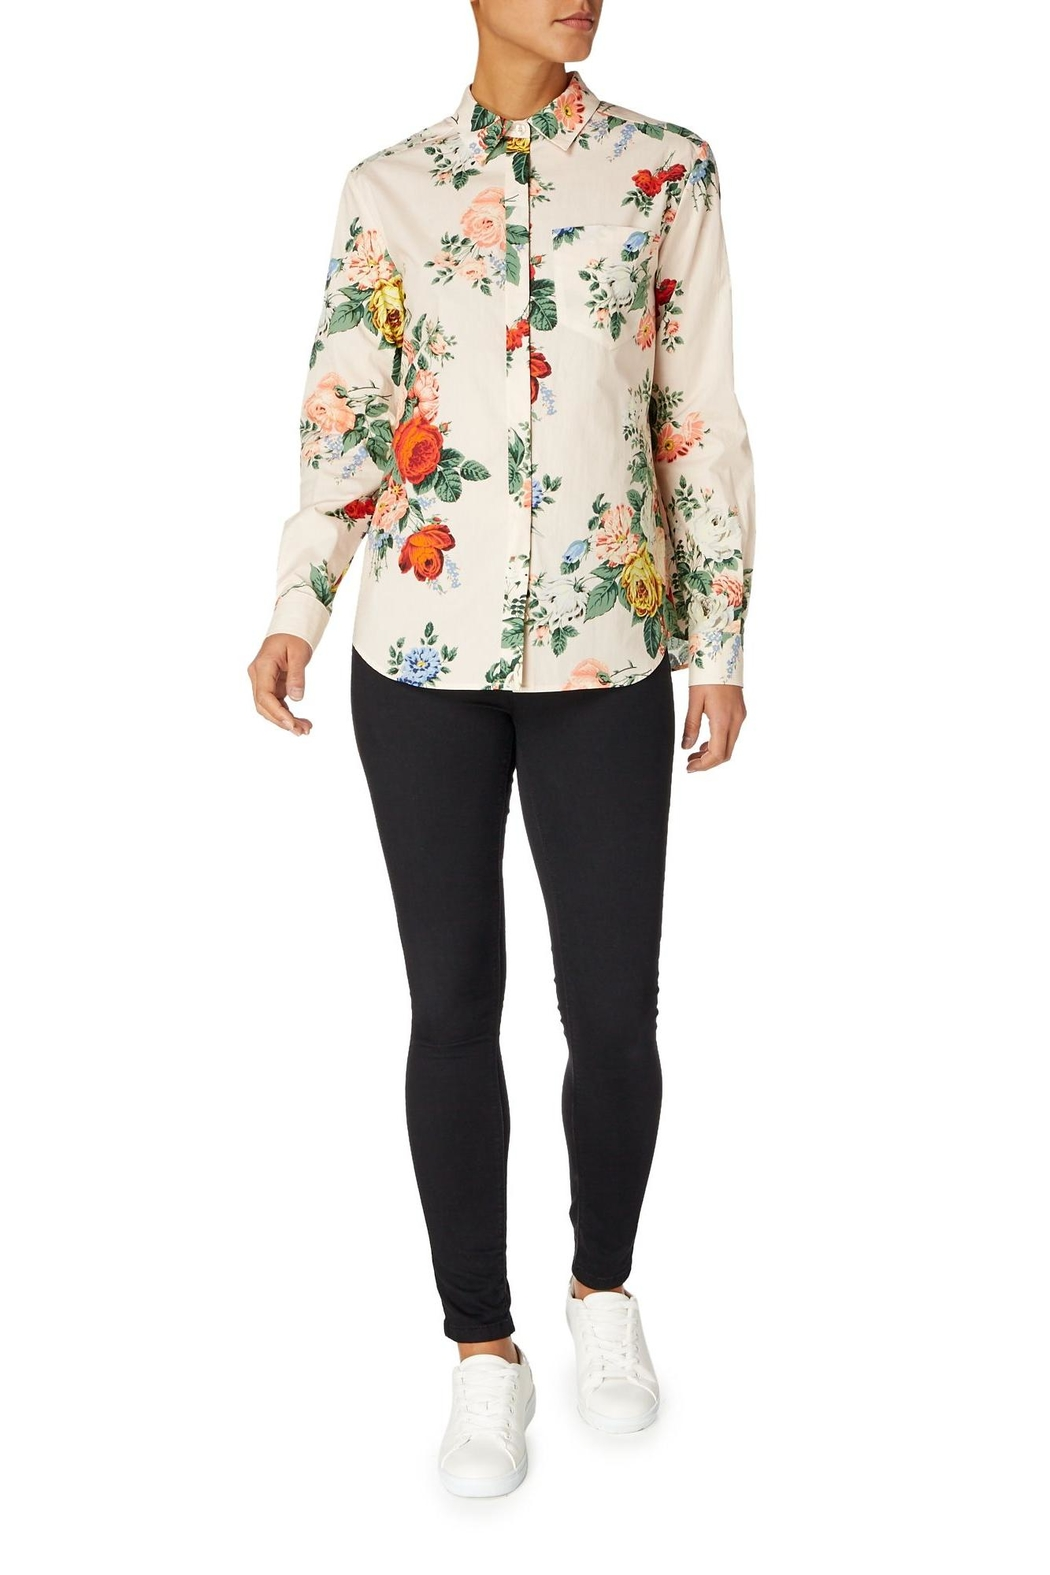 Sportmax Gaspare Floral Shirt - Front Full Image